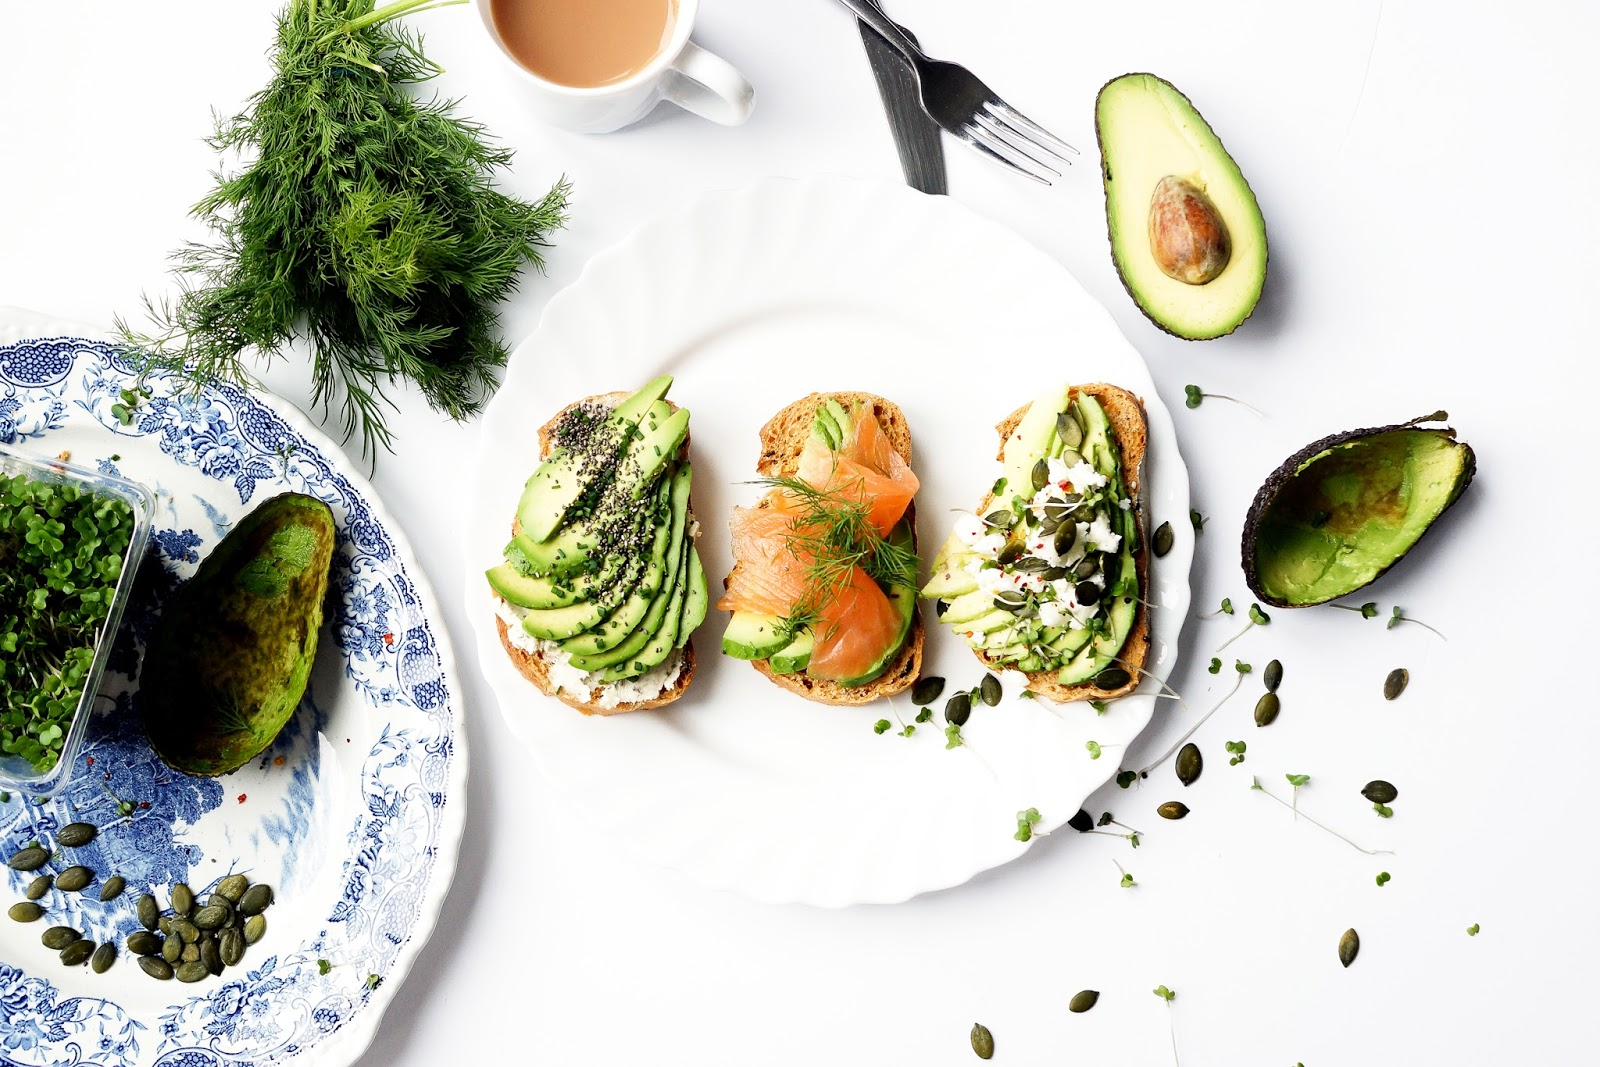 food-photography-lifestyle-avocado-toast-topping-recipe-ideas